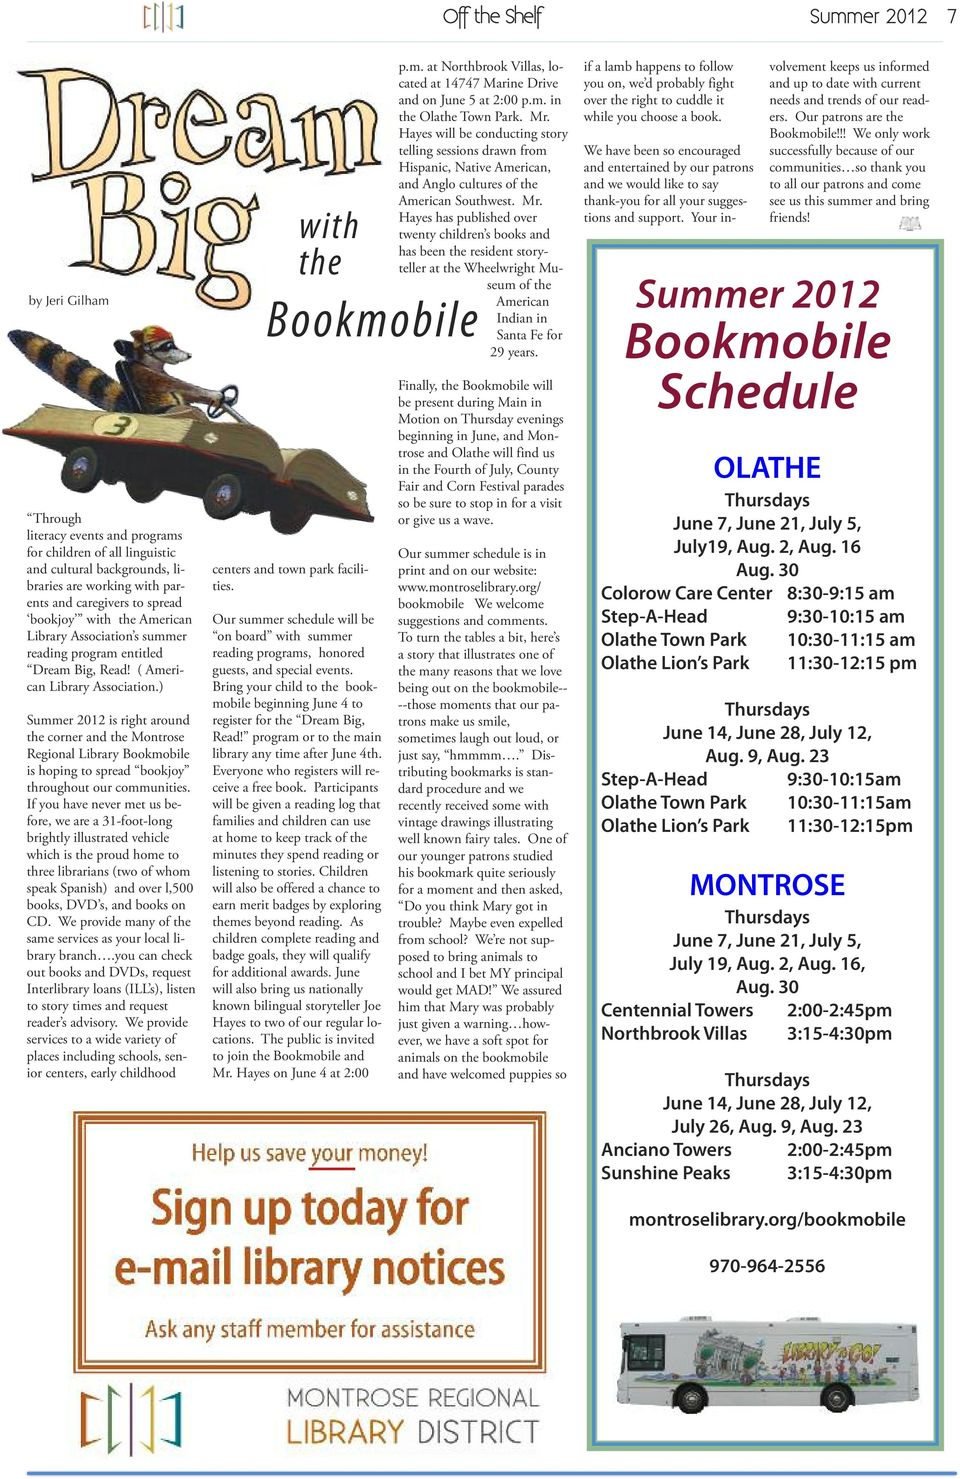 ) Summer 2012 is right around the corner and the Montrose Regional Library Bookmobile is hoping to spread bookjoy throughout our communities.